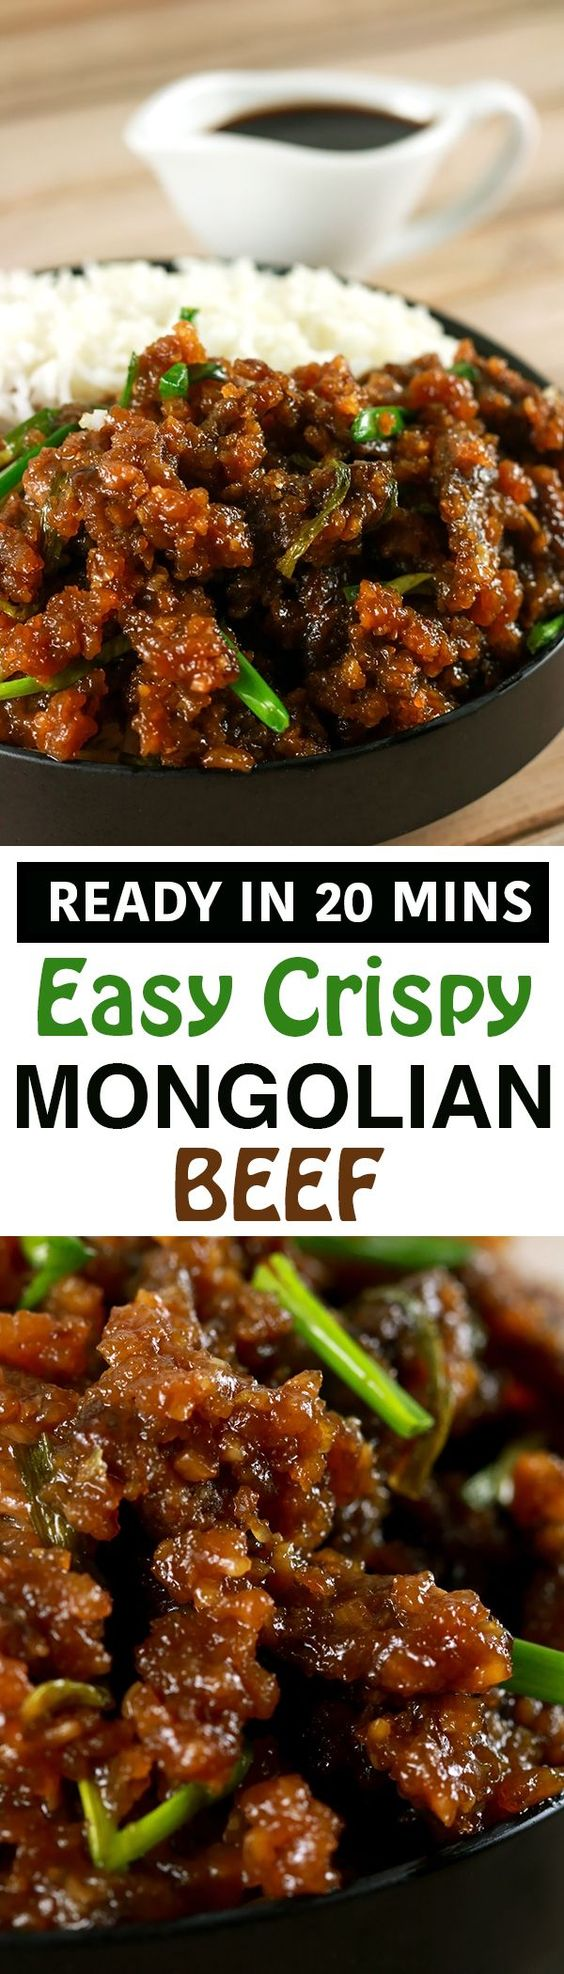 This Mongolian Beef recipe is super easy to make and uses simple, readily available ingredients! Whip this up in under 20 minutes and have the perfect mid-week dinner meal! | ScrambledChefs.com: